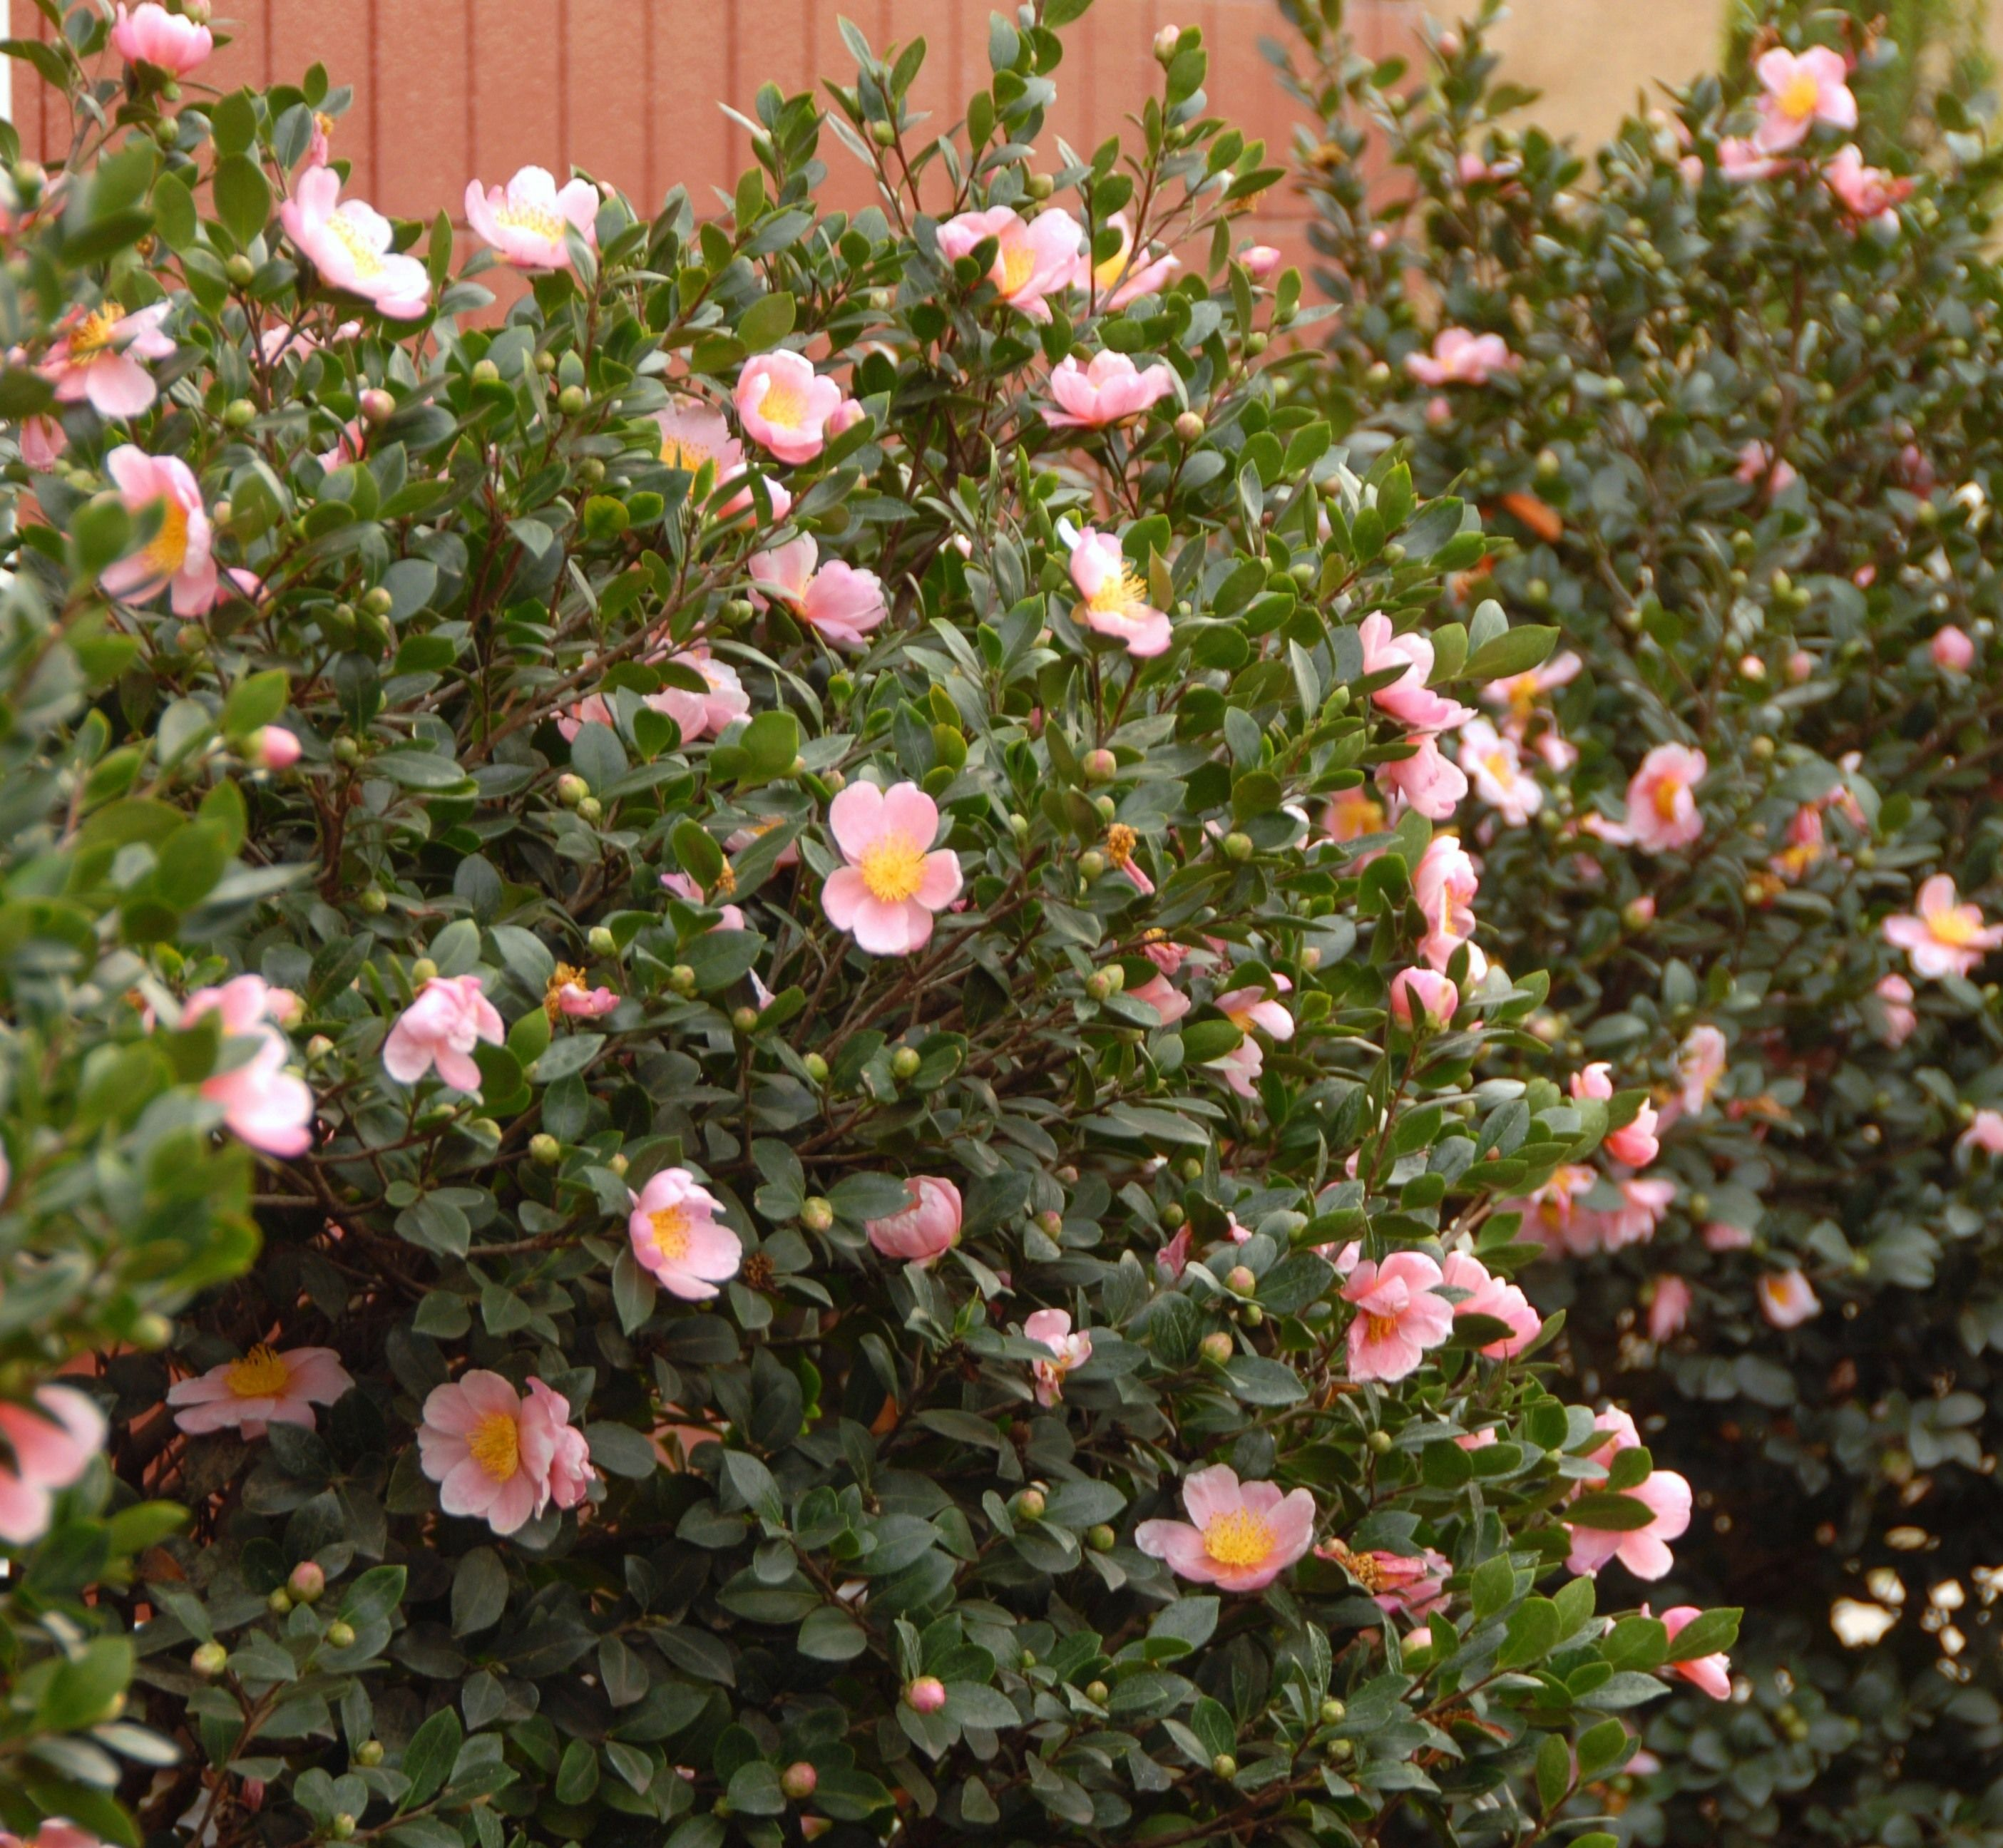 Everyone Loves A Fragrant Hedge The Pink A Boo Camellia S Large Wonderfully Fragrant Deep Pink Blooms Are Camellia Plant Monrovia Plants Evergreen Plants